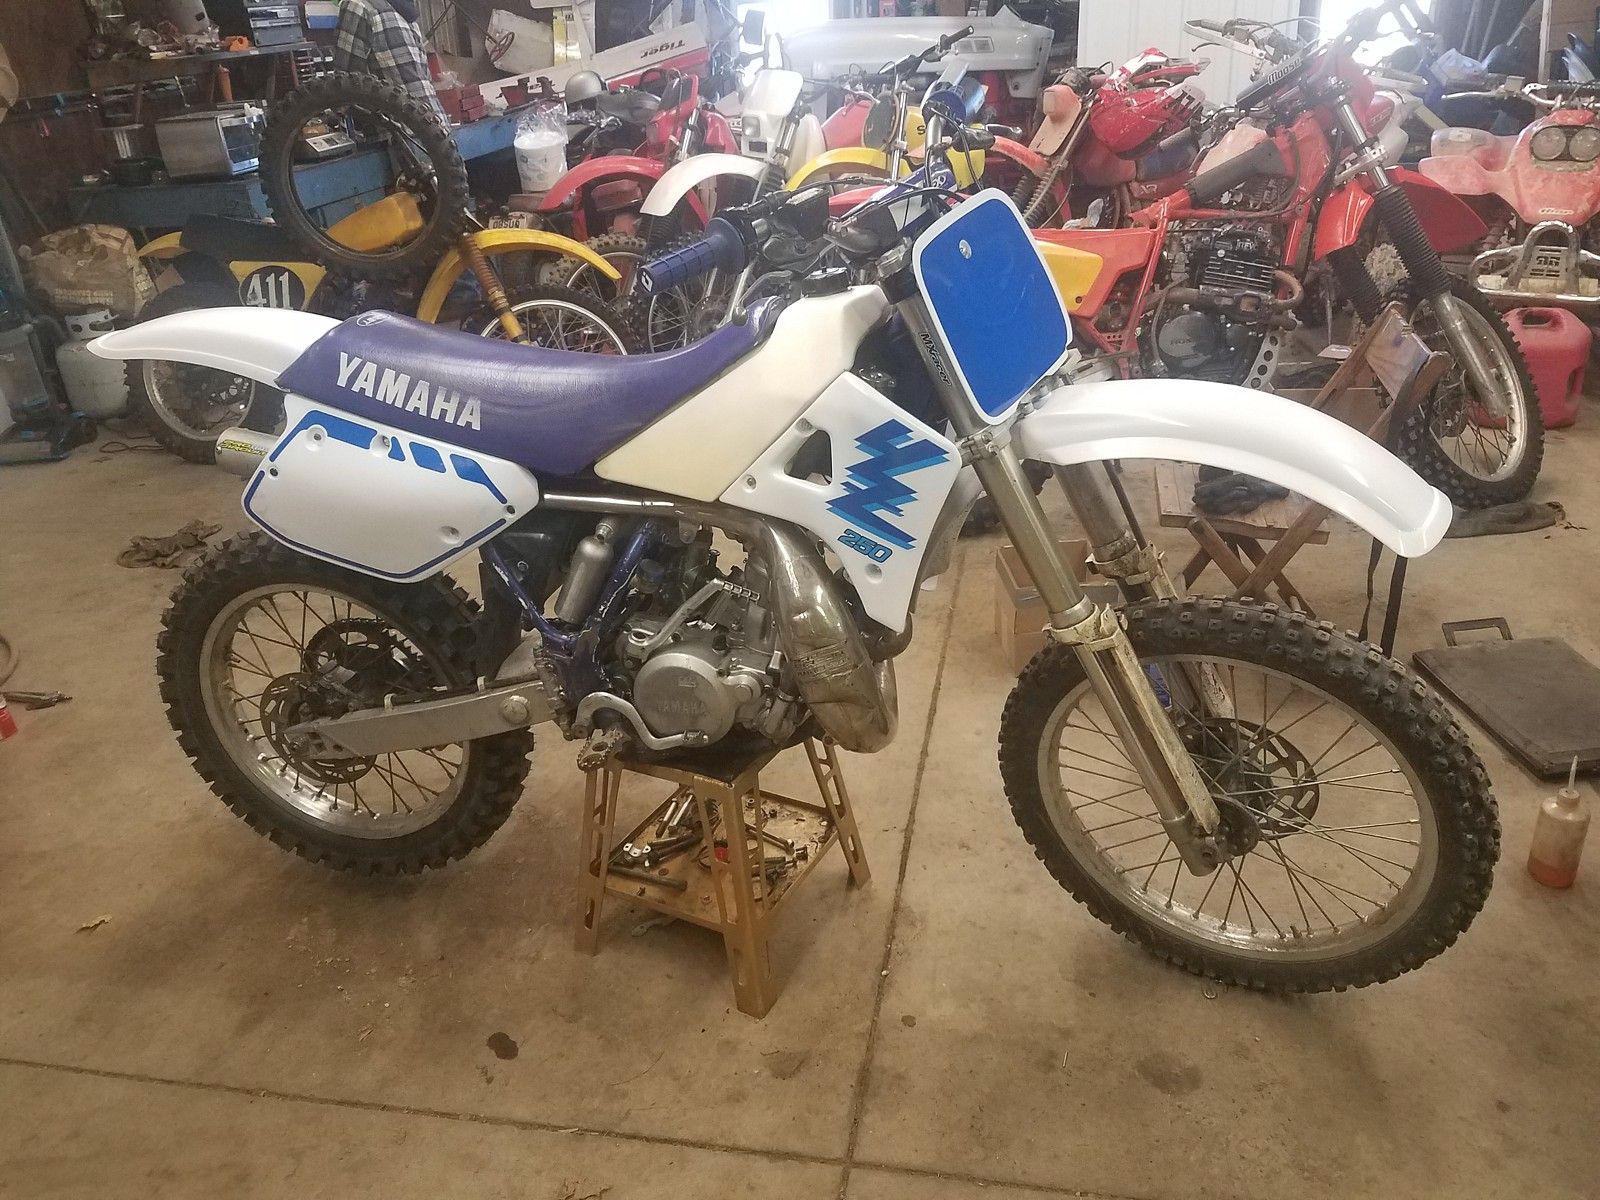 1989 Yamaha YZ250  - mpeters - Motocross Pictures - Vital MX